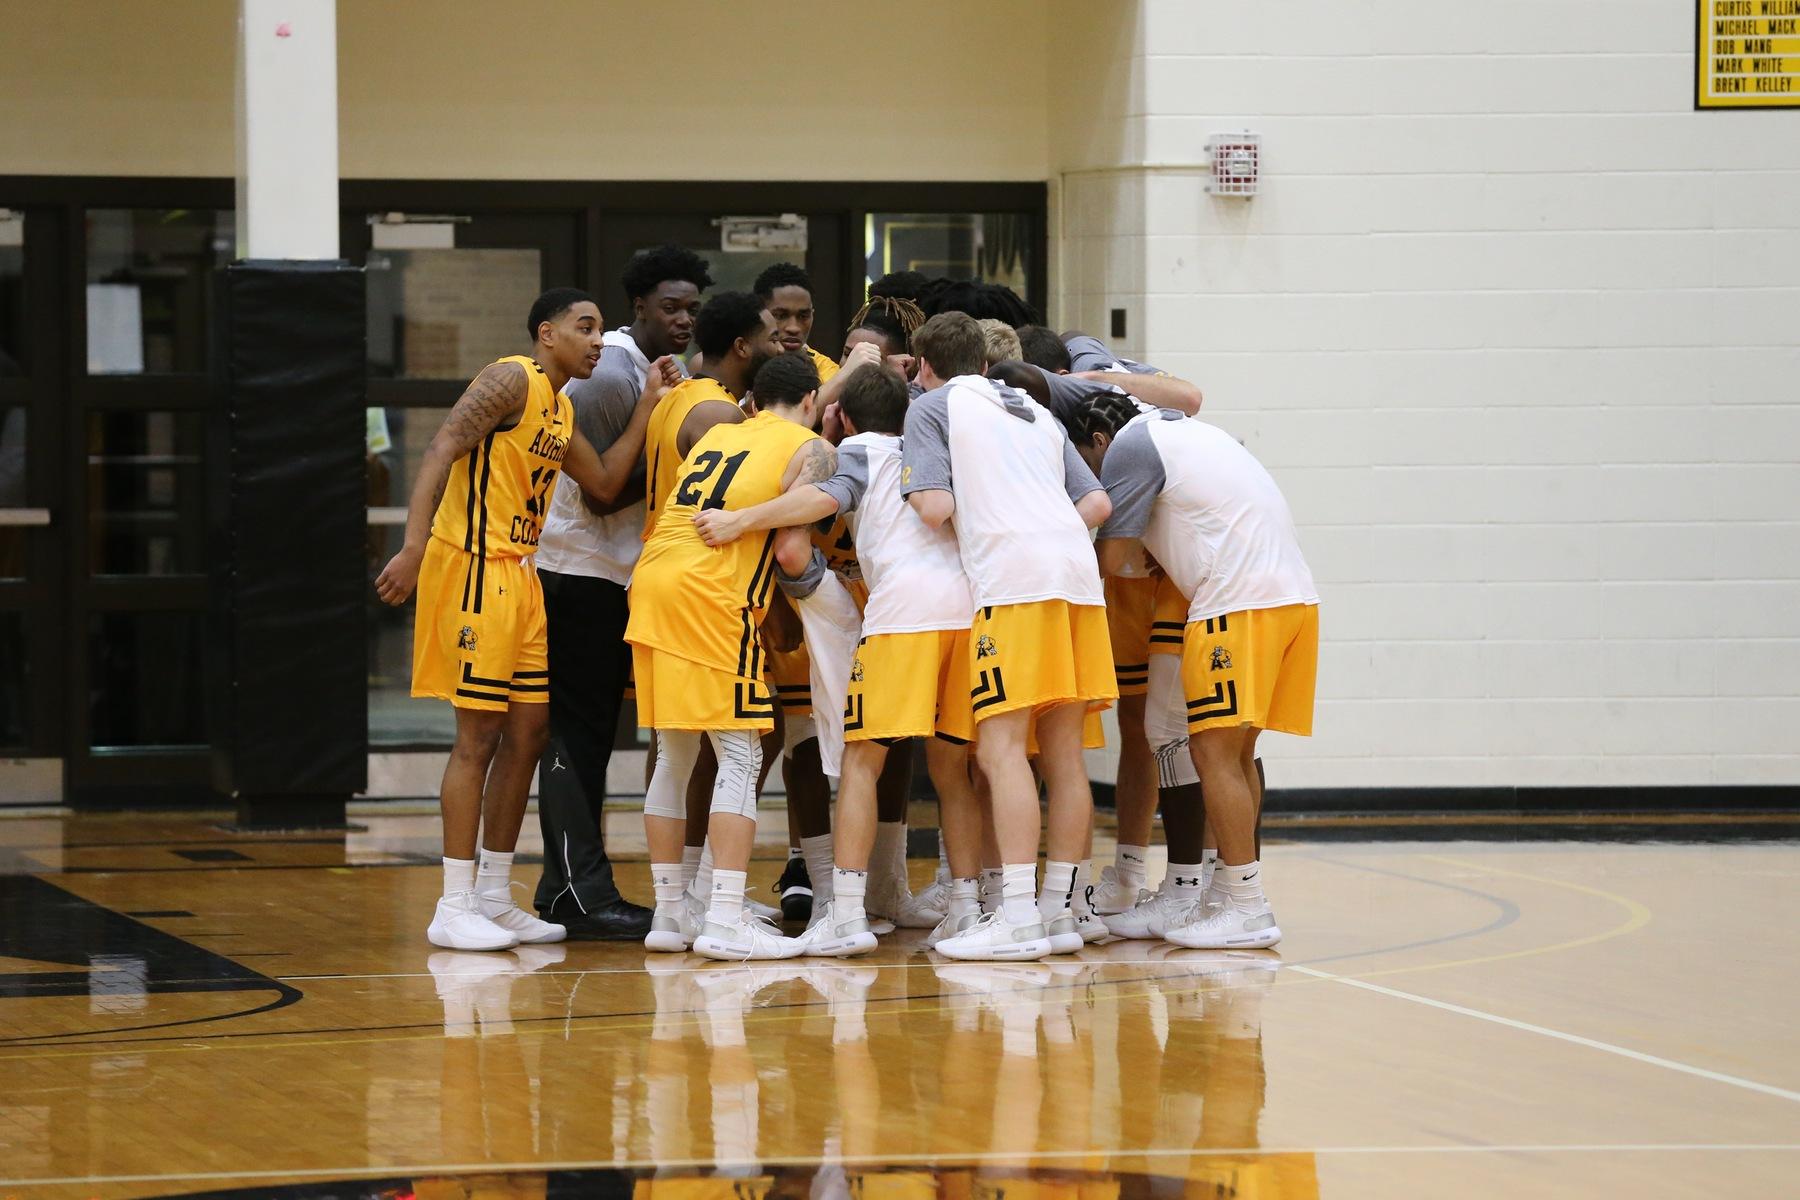 Men's Basketball Ends 2018 with Loss to Mount Union in Holiday Classic